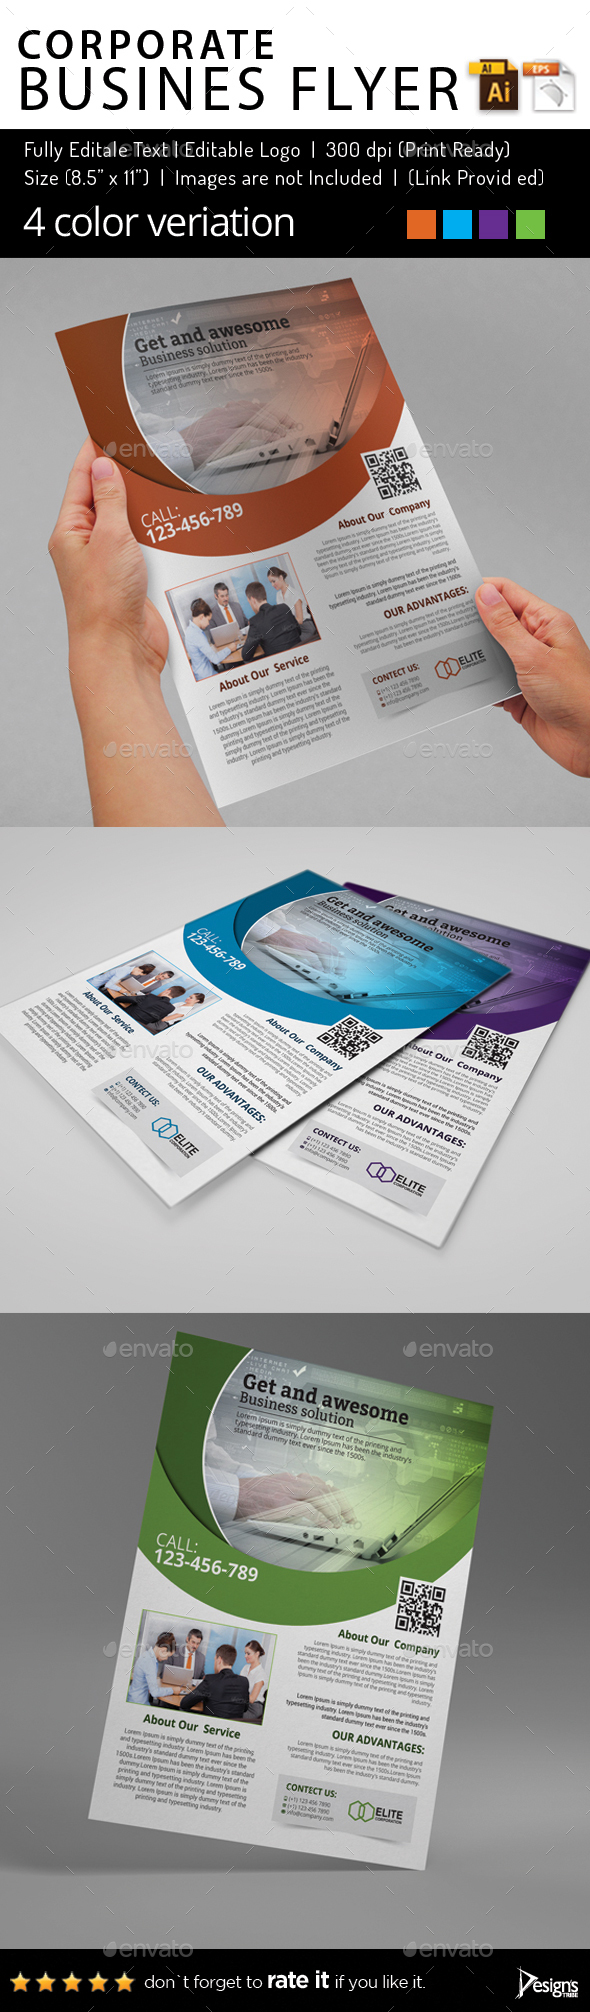 Multipurpose Business Flyer 83 - Flyers Print Templates